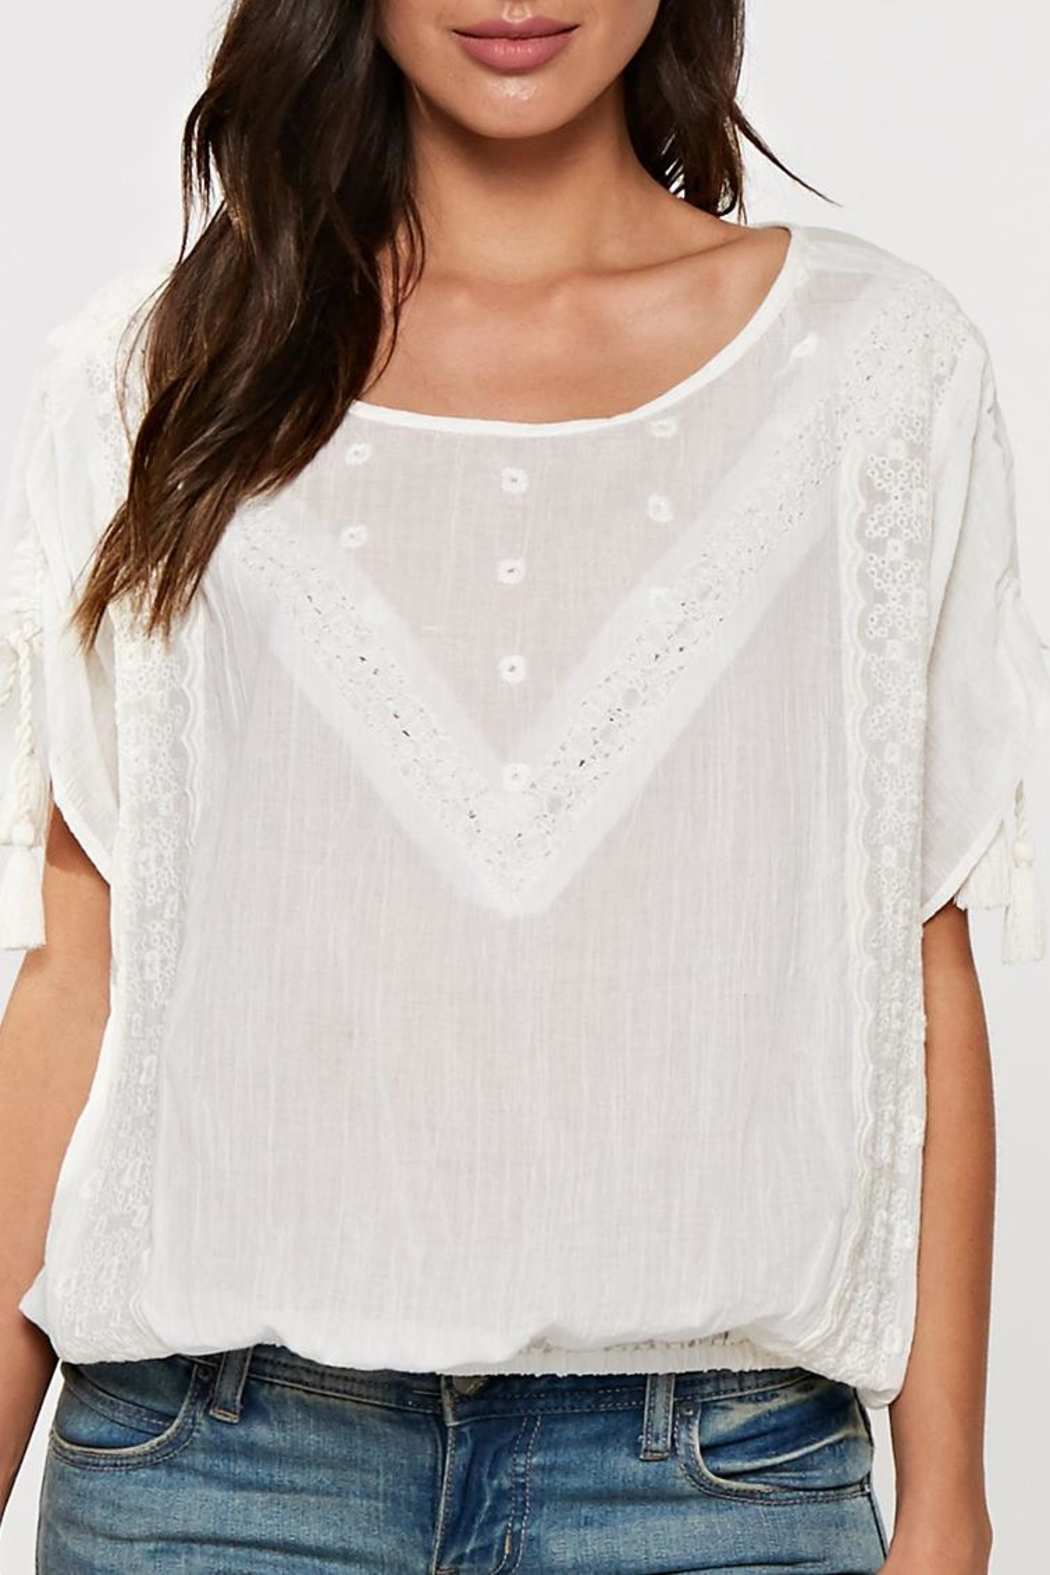 Lovestitch Lace Trimmed Top - Main Image